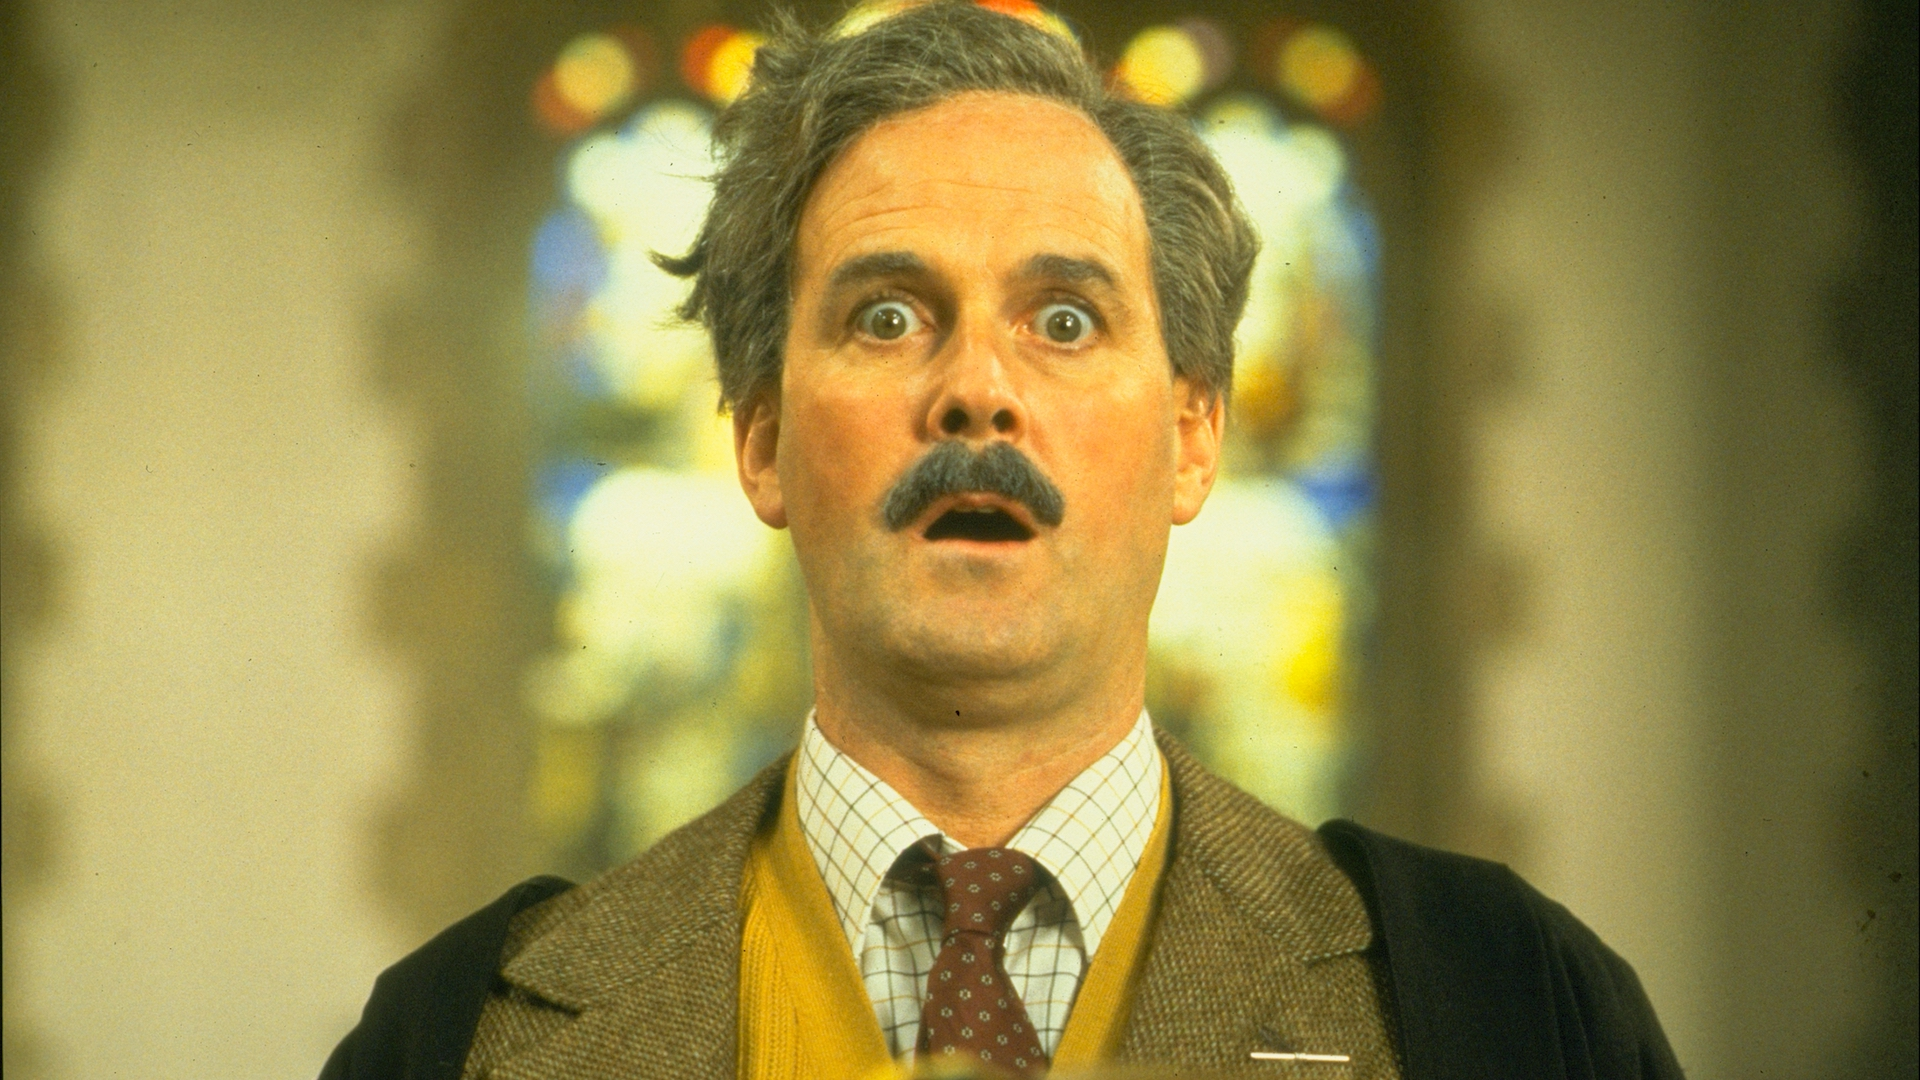 John Cleese in Monty Python's The Meaning of Life on Hollywood Suite